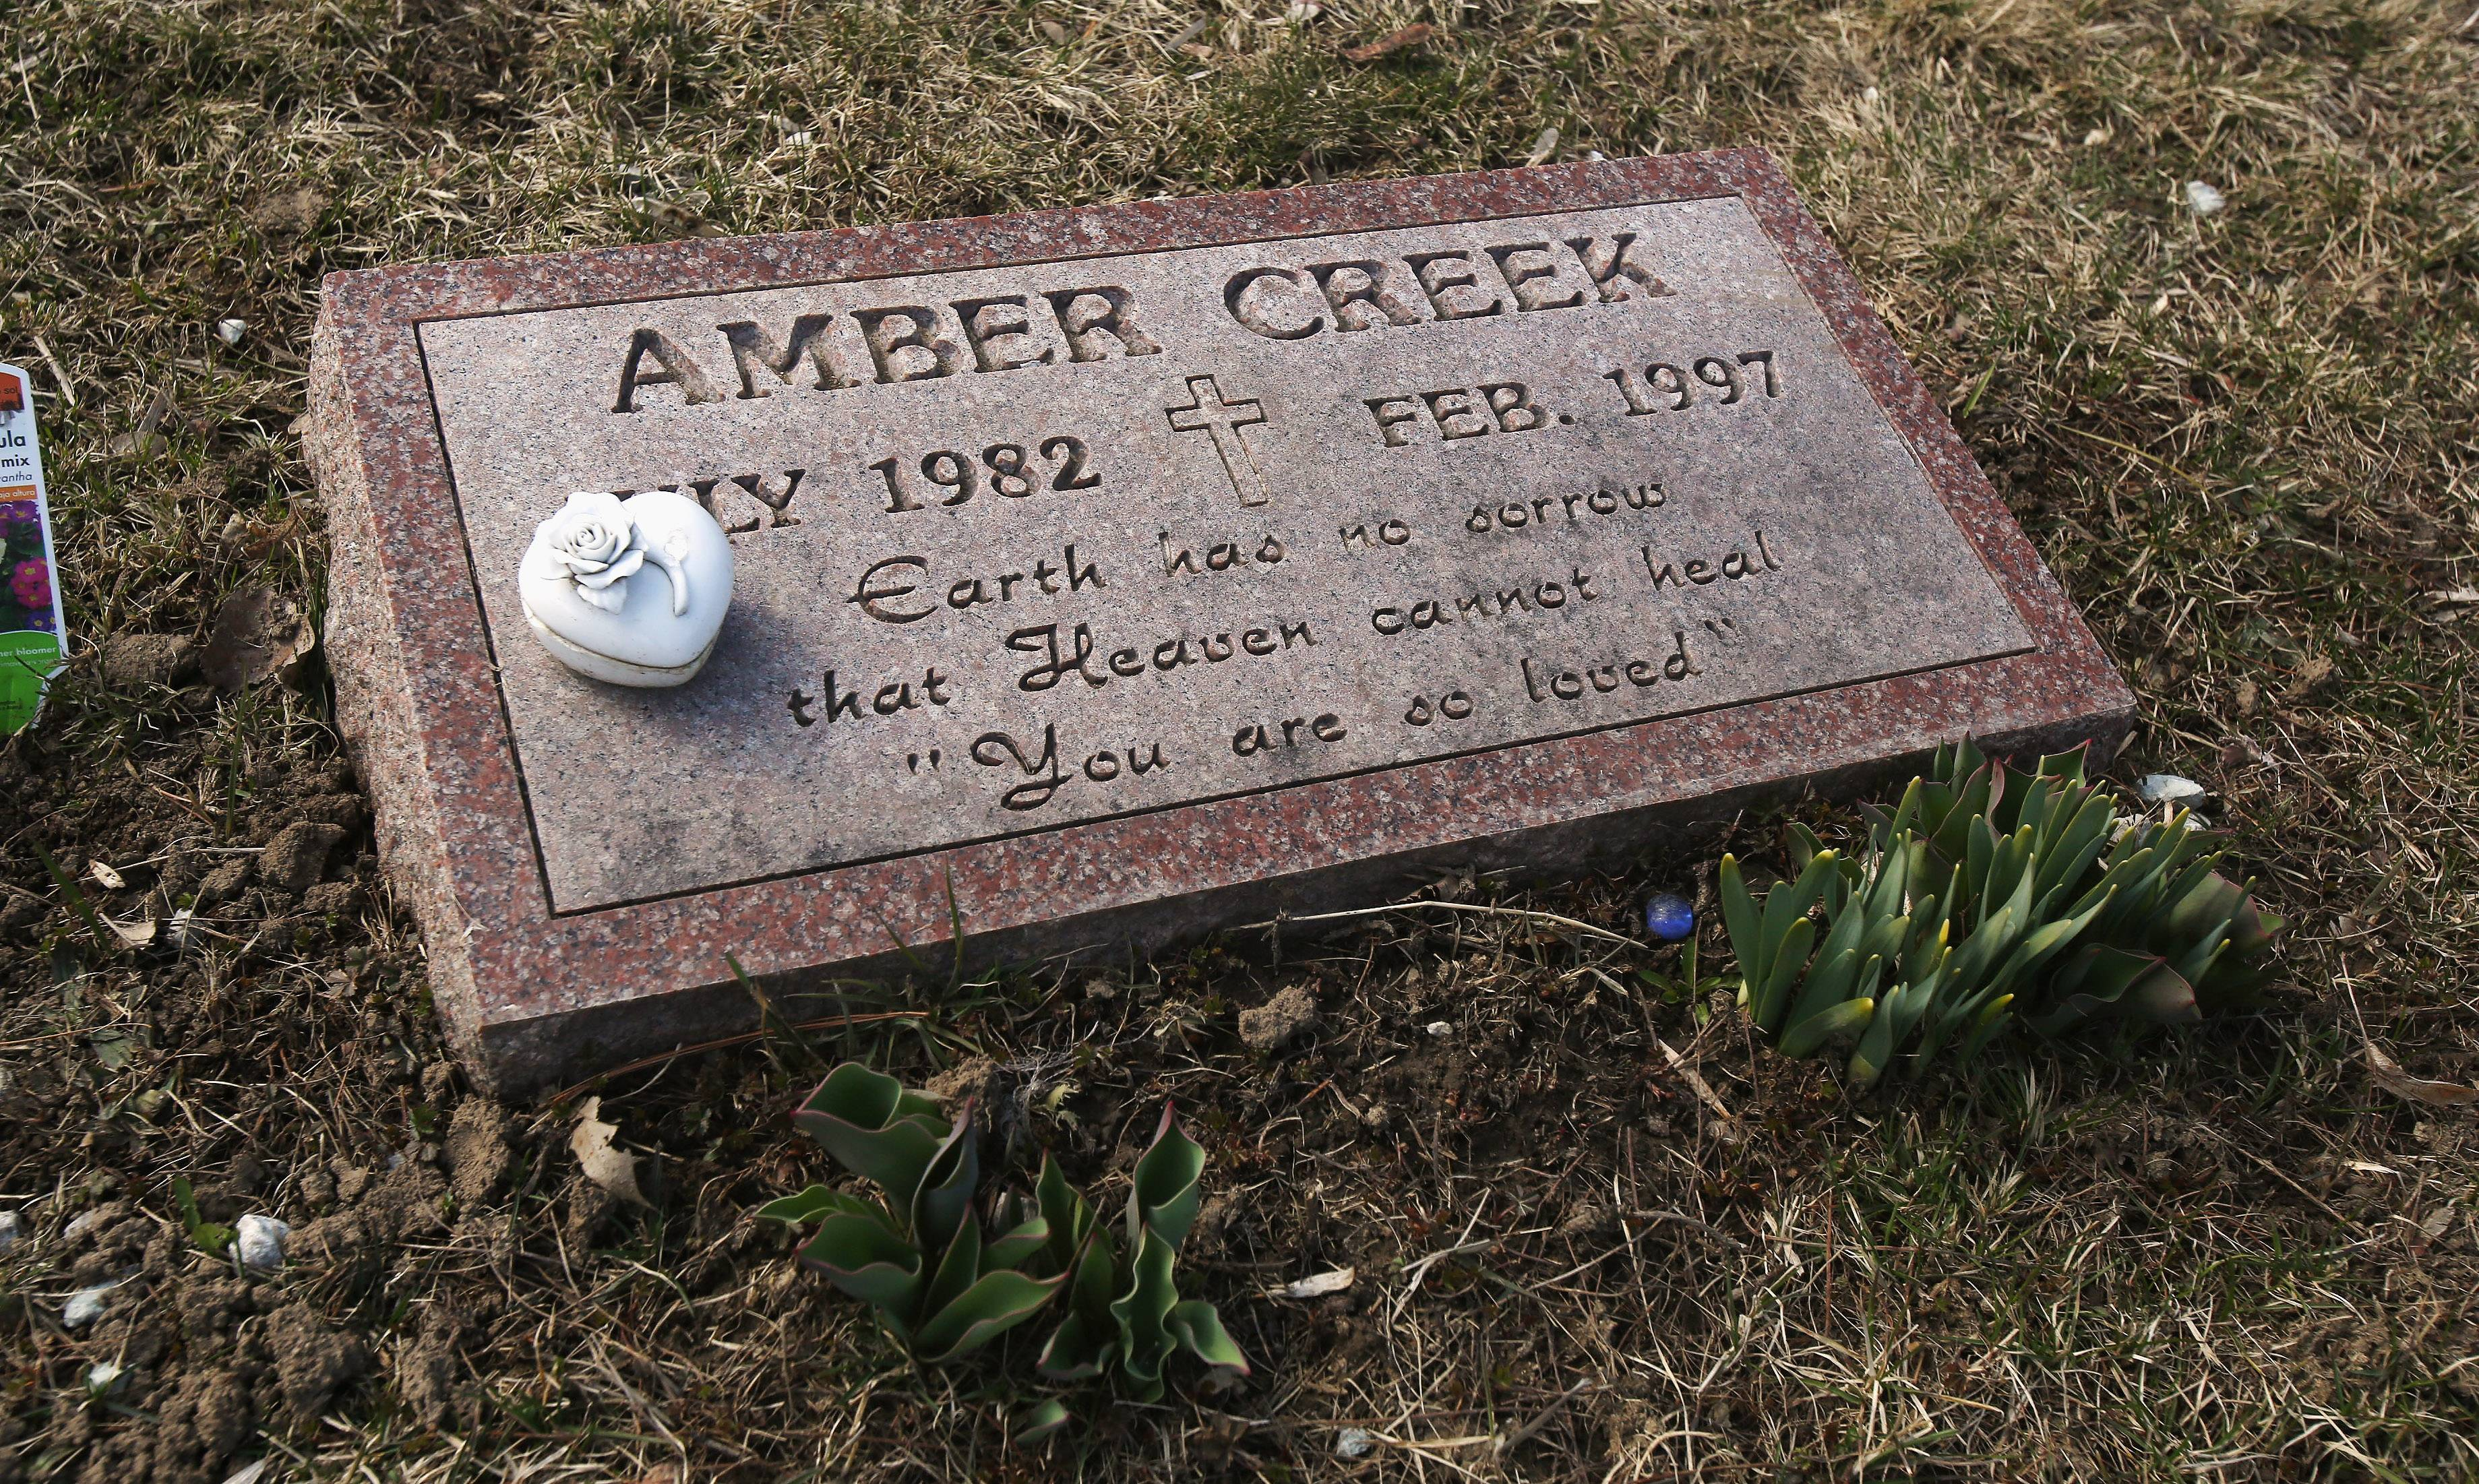 The gravesite of Amber Creek at Holy Family Cemetery near Racine. Officials announced Tuesday that after 17 years, they have charged a Palatine man with Amber's murder.